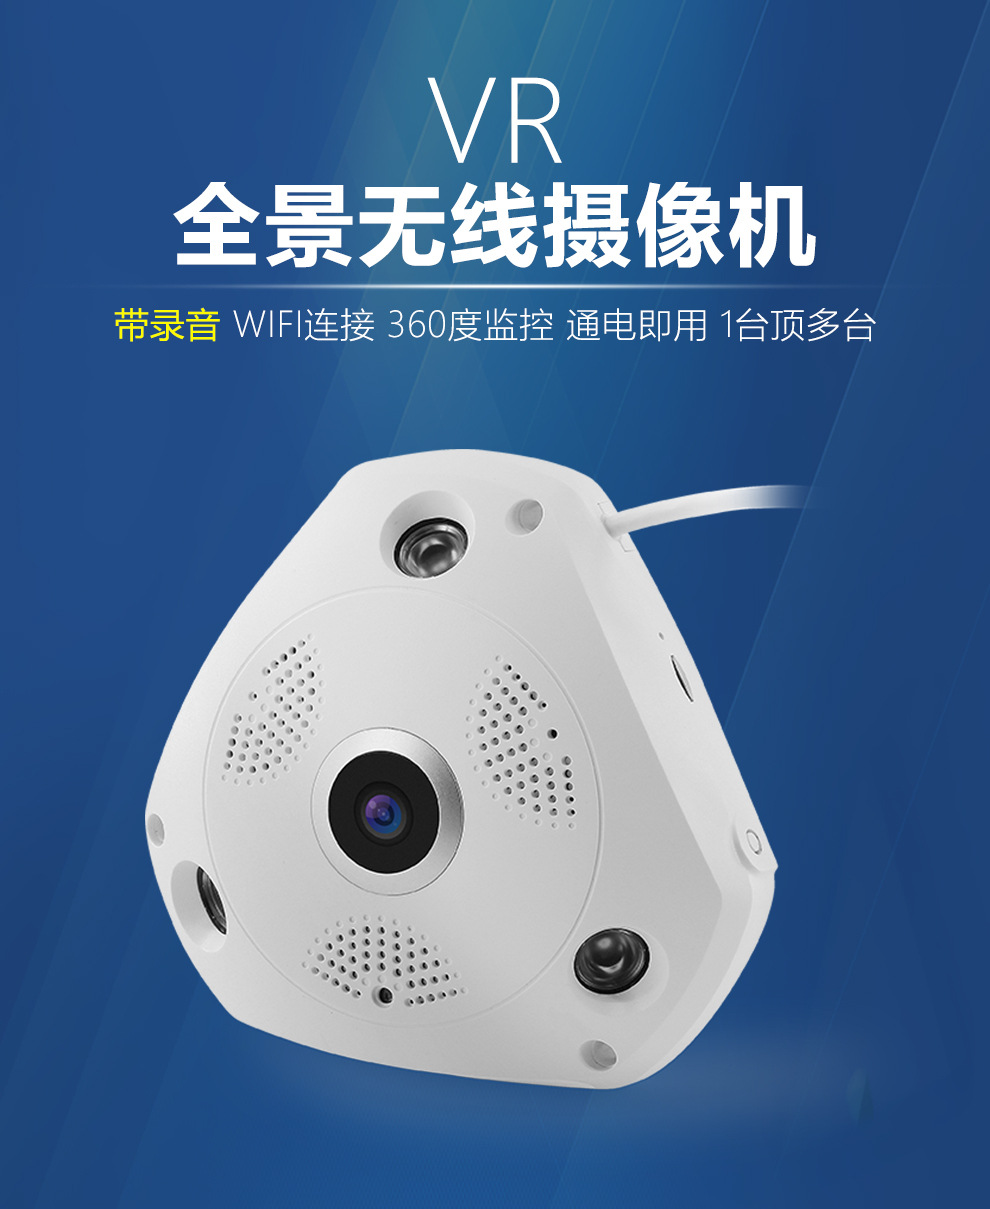 360 Degree Panoramic Camera 1.3MP Fisheye Panoramic IP Camera HD 1080P WIFI PTZ CCTV 3D VR Video IP Camera Cam 360 camera 4k ultra hd panoramic action camera 1080p 3d fisheye lens vr camera wifi mini sports video camera deportiva kamera